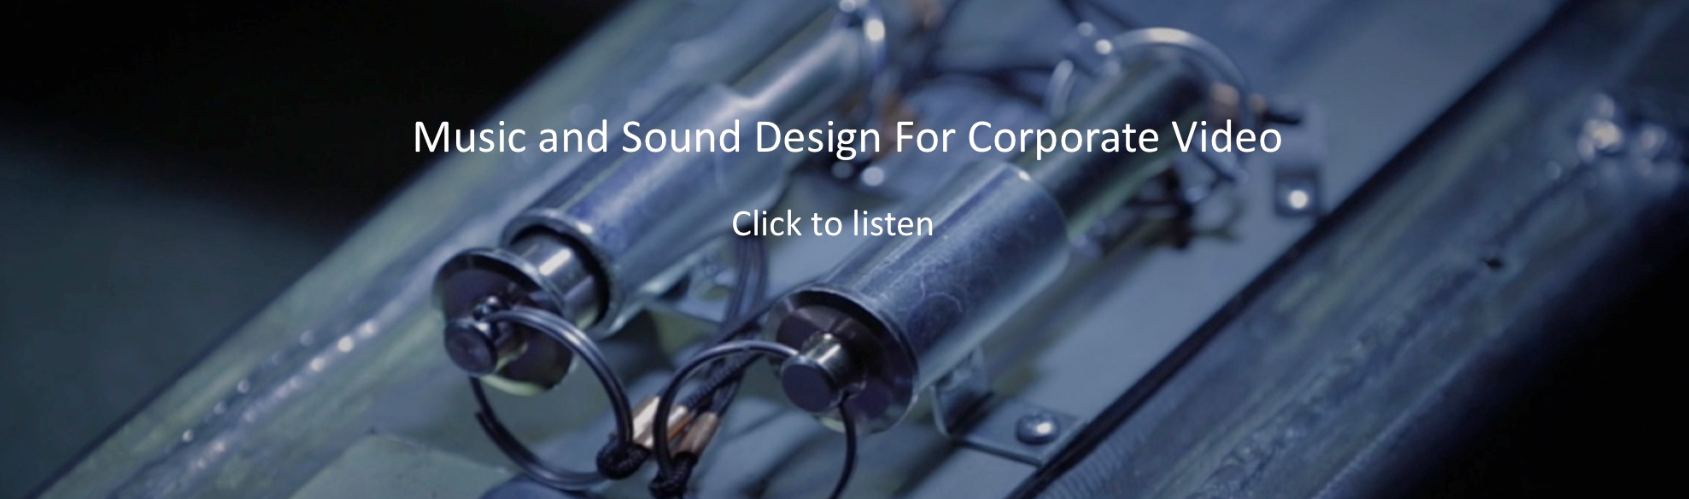 Music and Sound Design For Corporate Video In Manchester, Liverpool, Lancashire and the North West